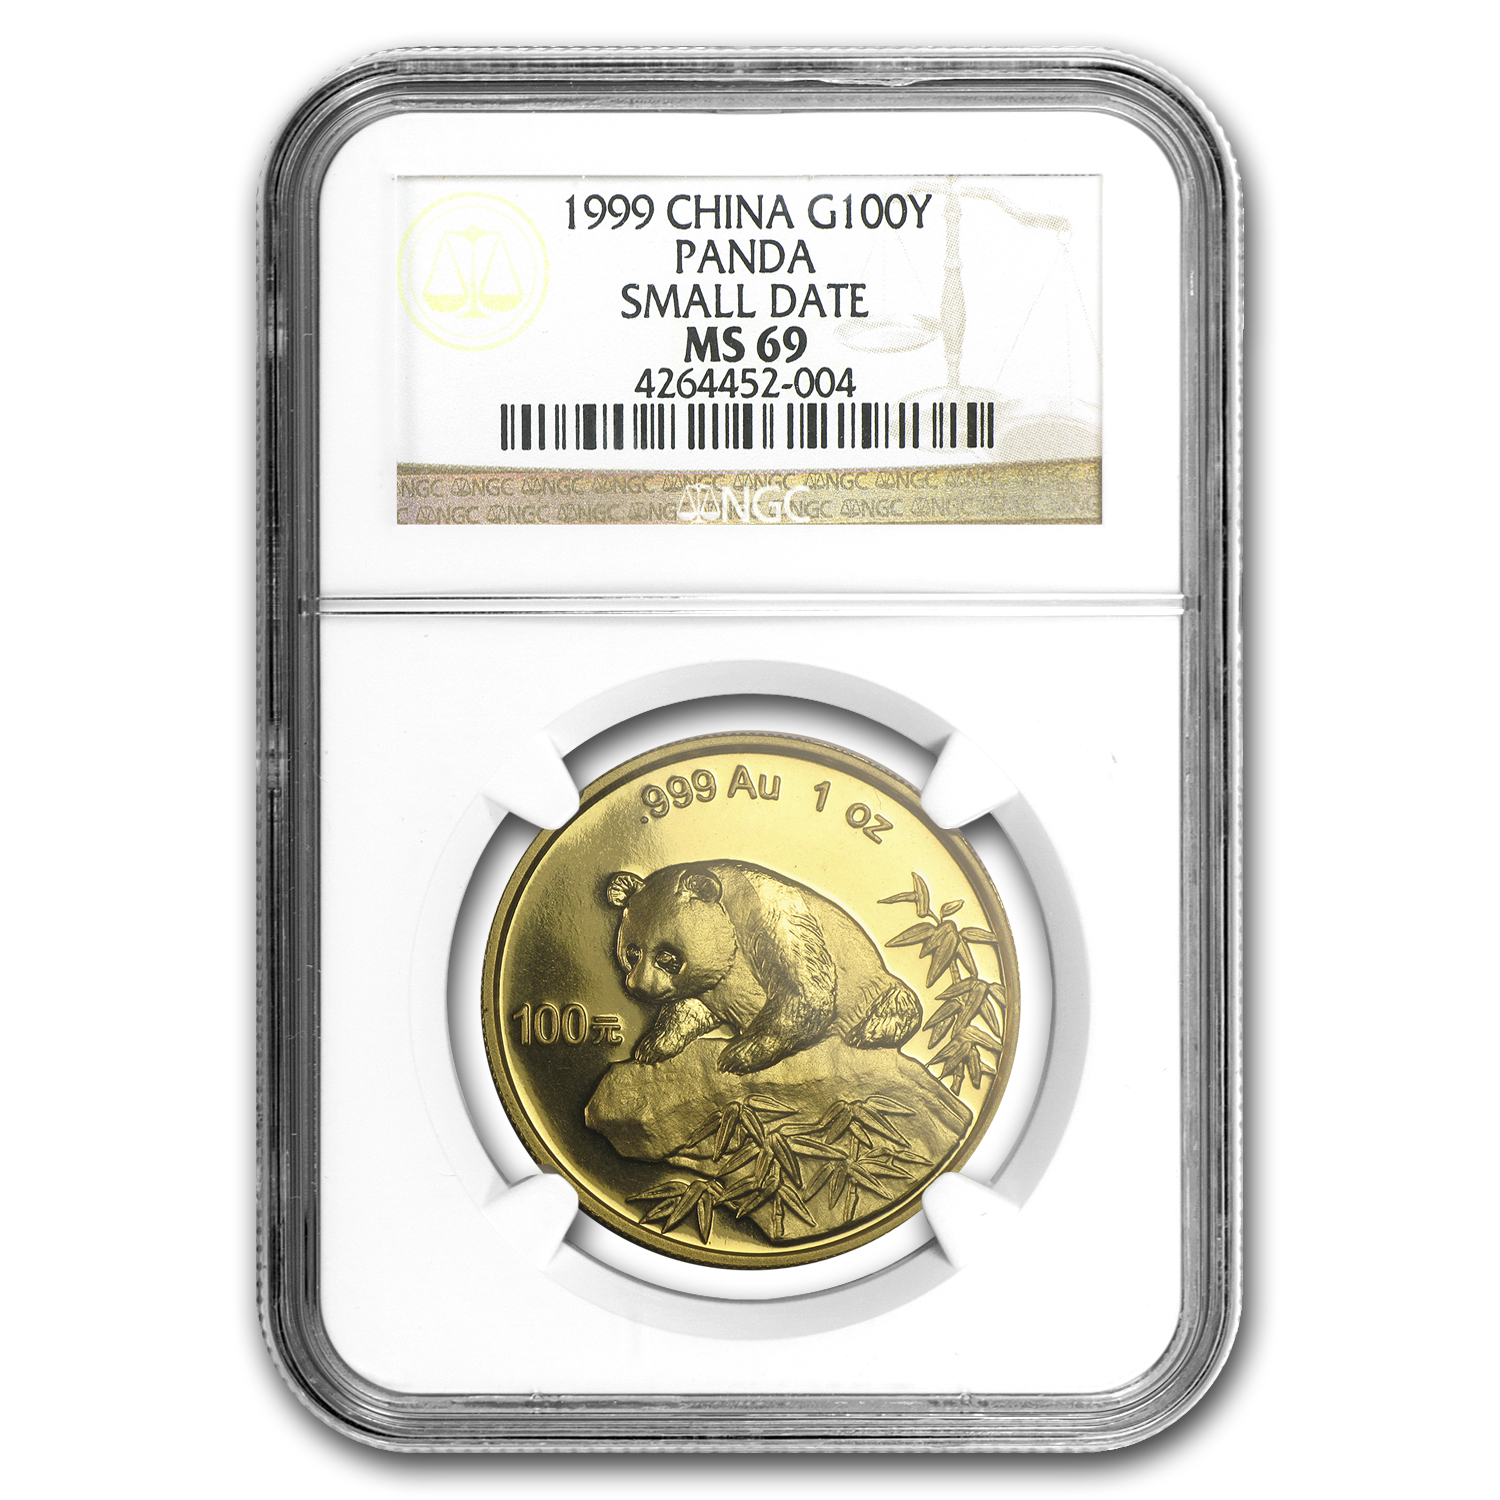 1999 China 1 oz Gold Panda Small Date MS-69 NGC